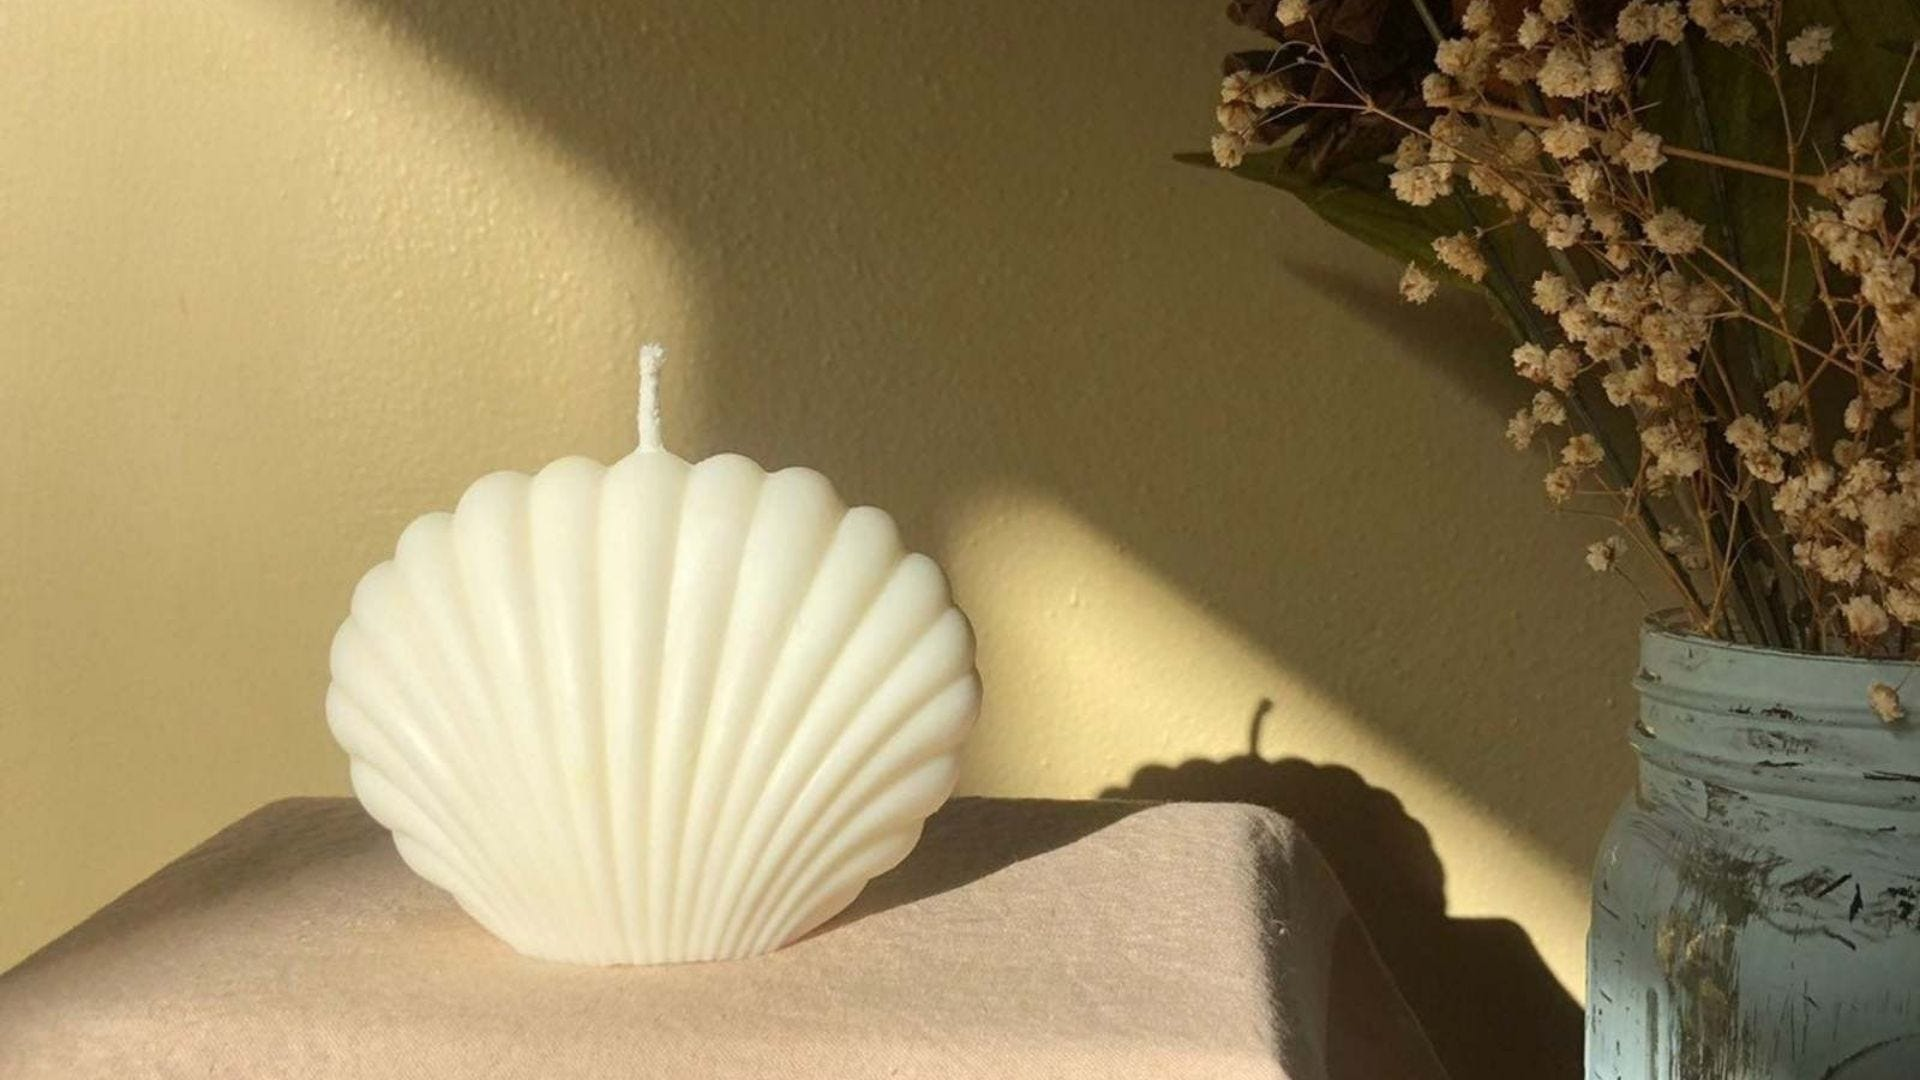 A white seashell candle on a table next to a vase of dried plants.